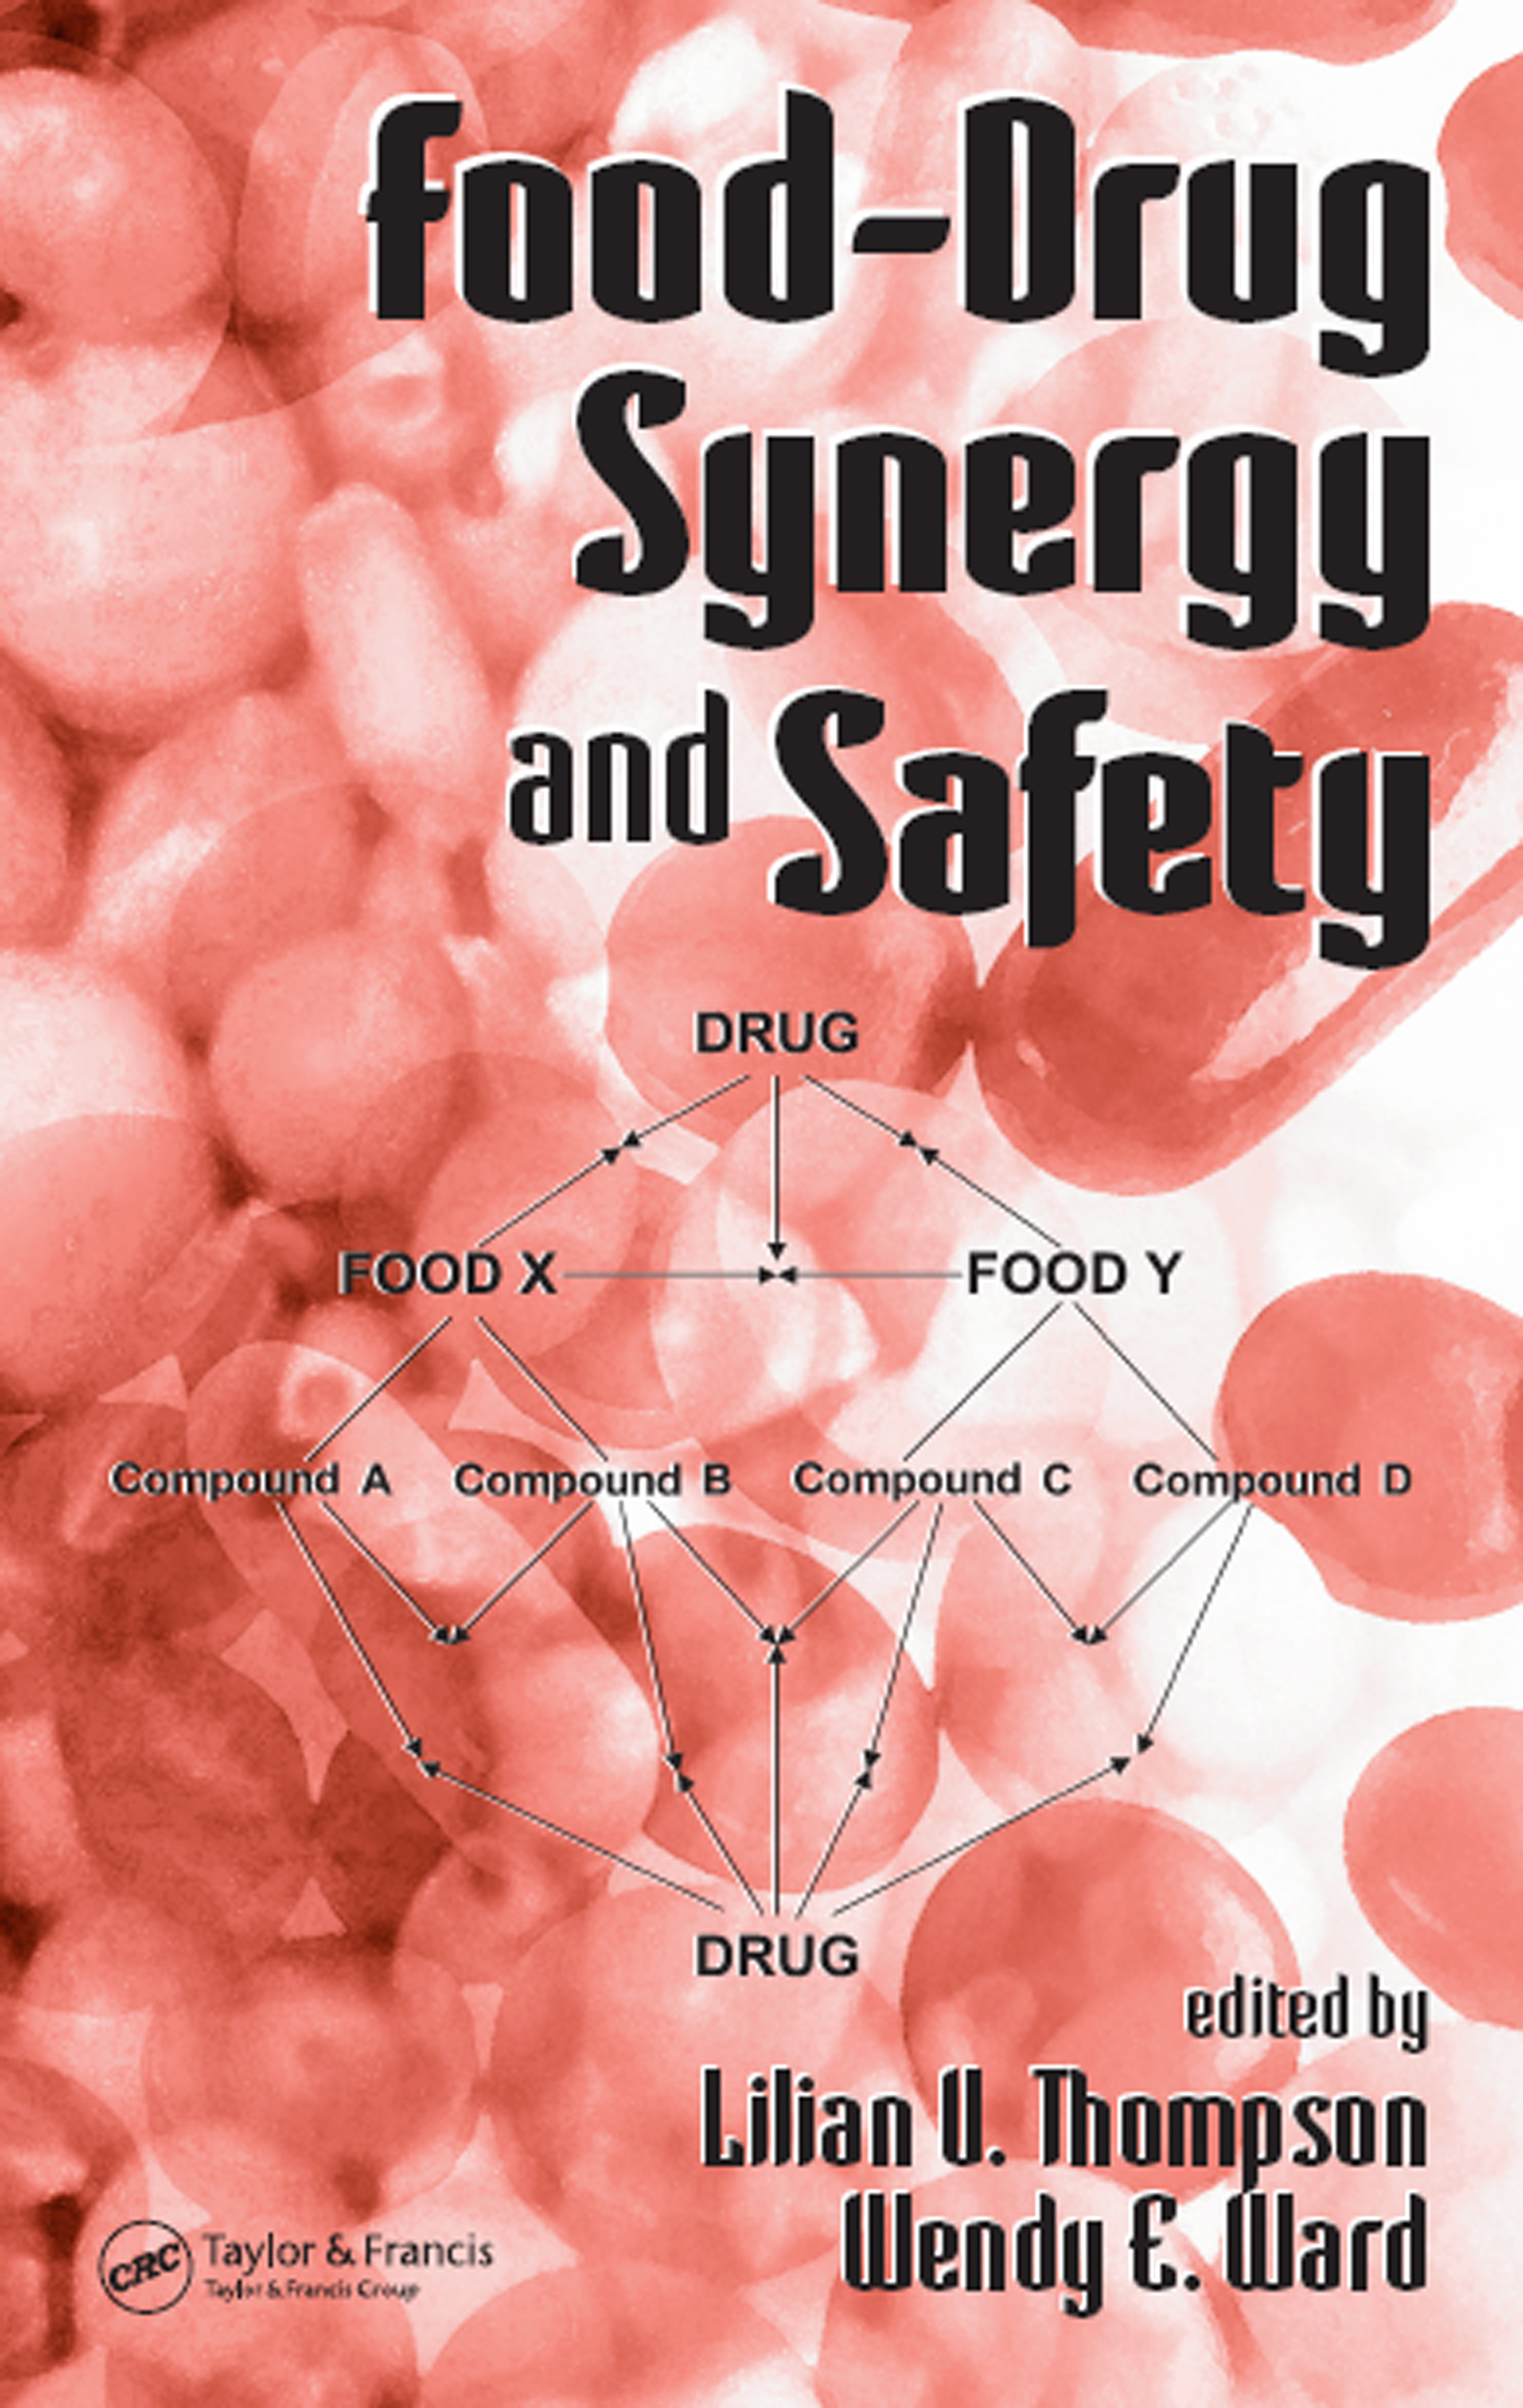 Lipid Sources and Plant Sterols: Effect of Food and Food–Drug Synergy on Cardiovascular Disease Risk